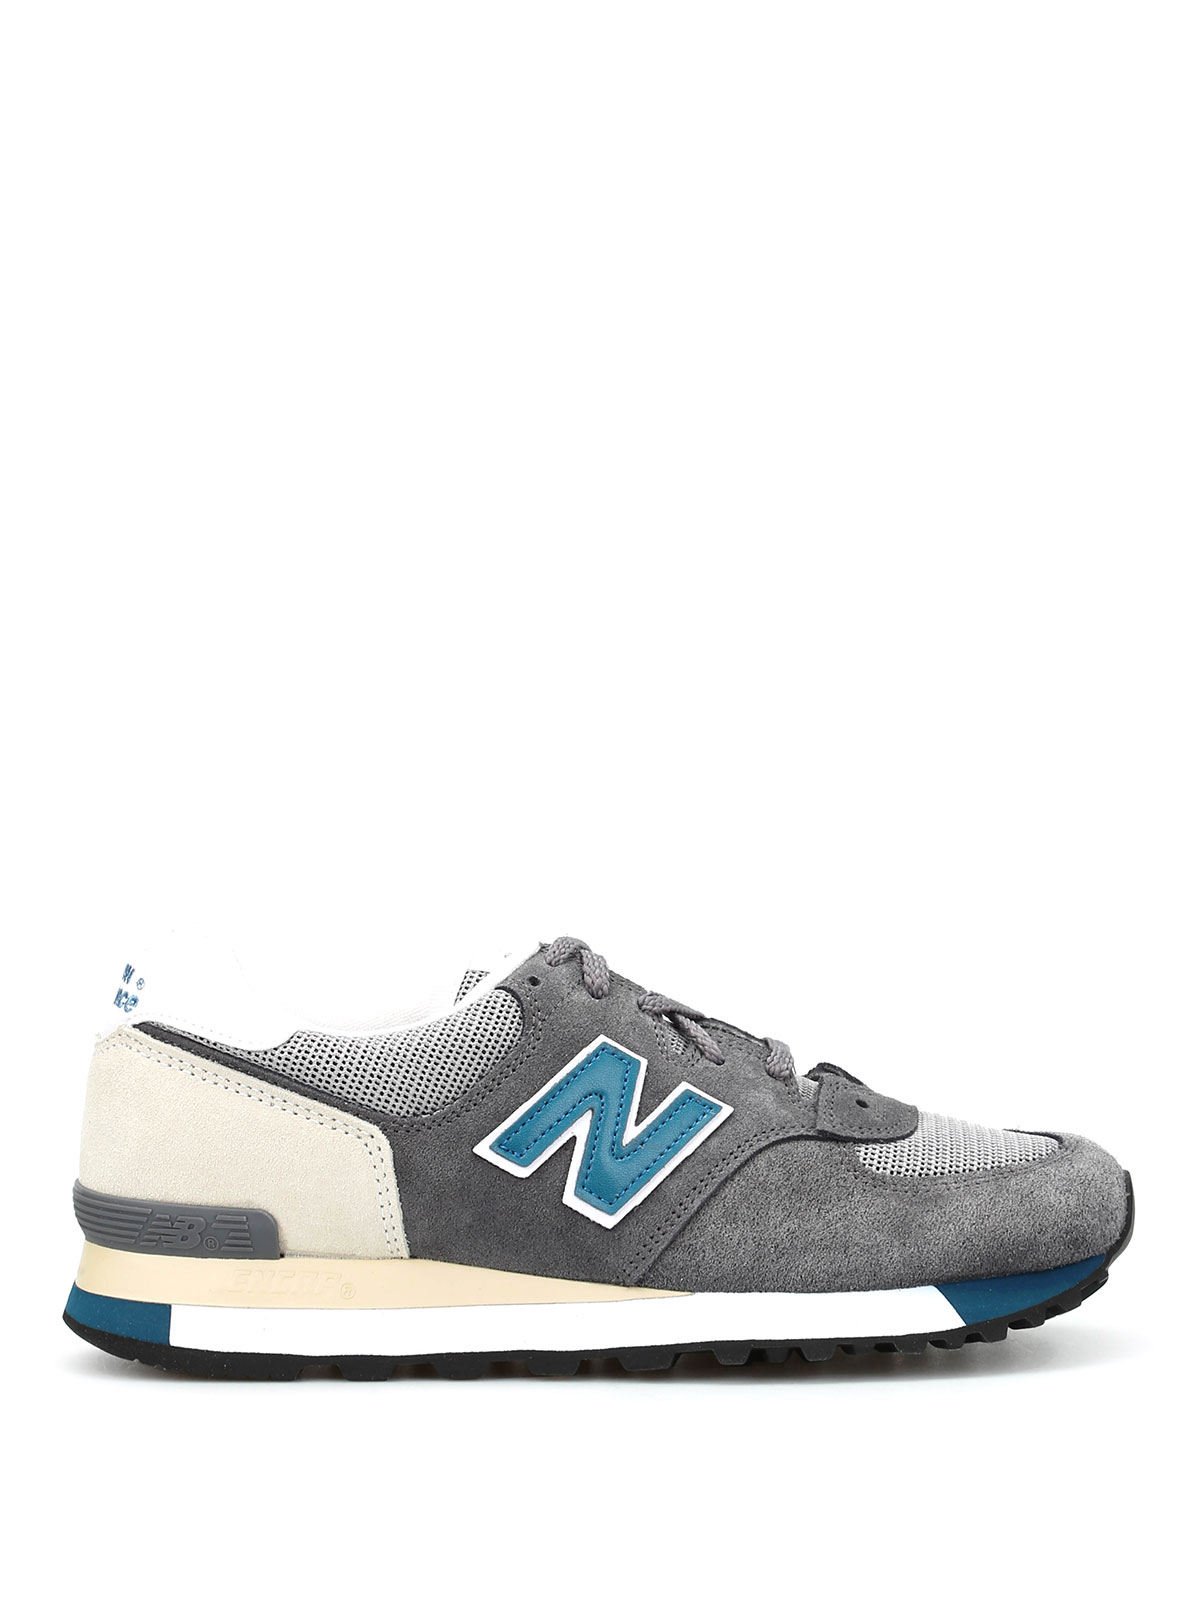 uk availability 13173 1f915 New Balance - 575 Classics running sneakers - trainers - NB ...